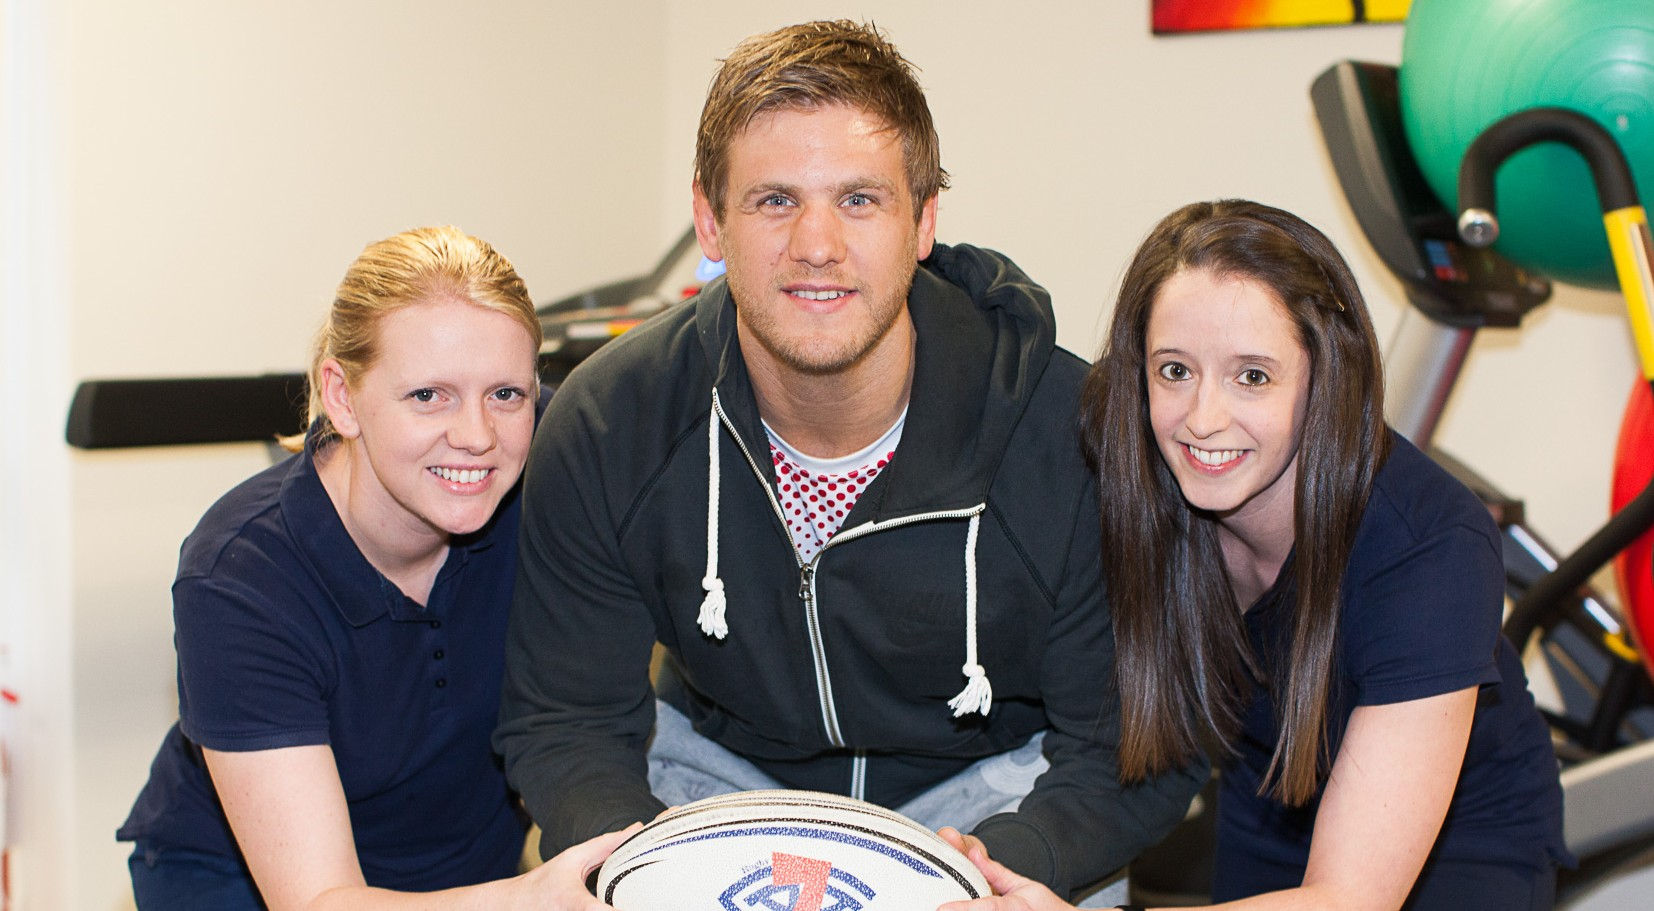 Rugby star supports Physio clinic in donating profits to brain charity